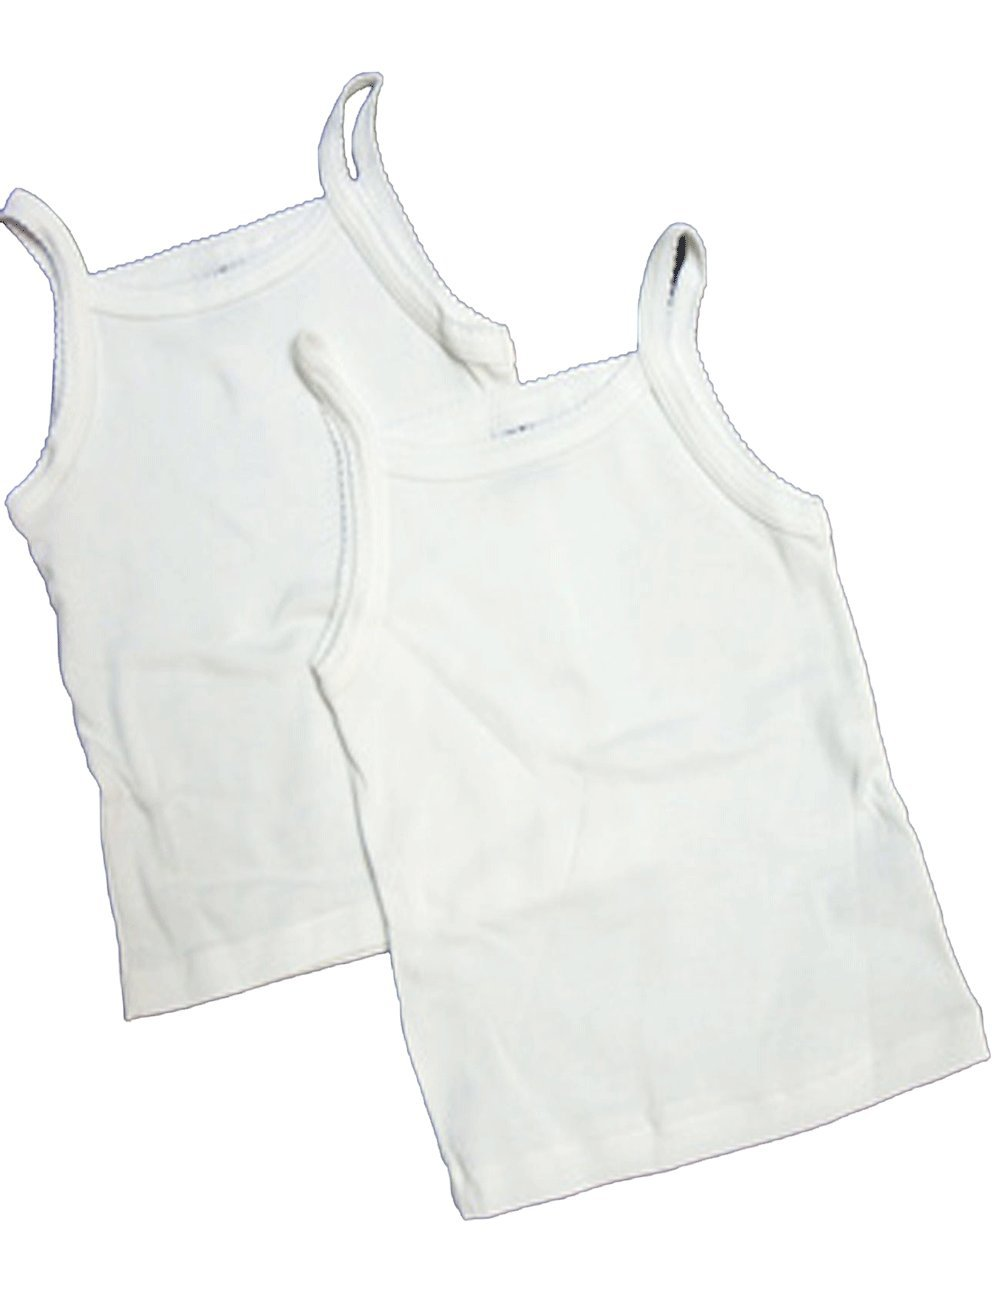 2//18 12, White Petit Bateau 2pc Solid White Undershirts-sizes